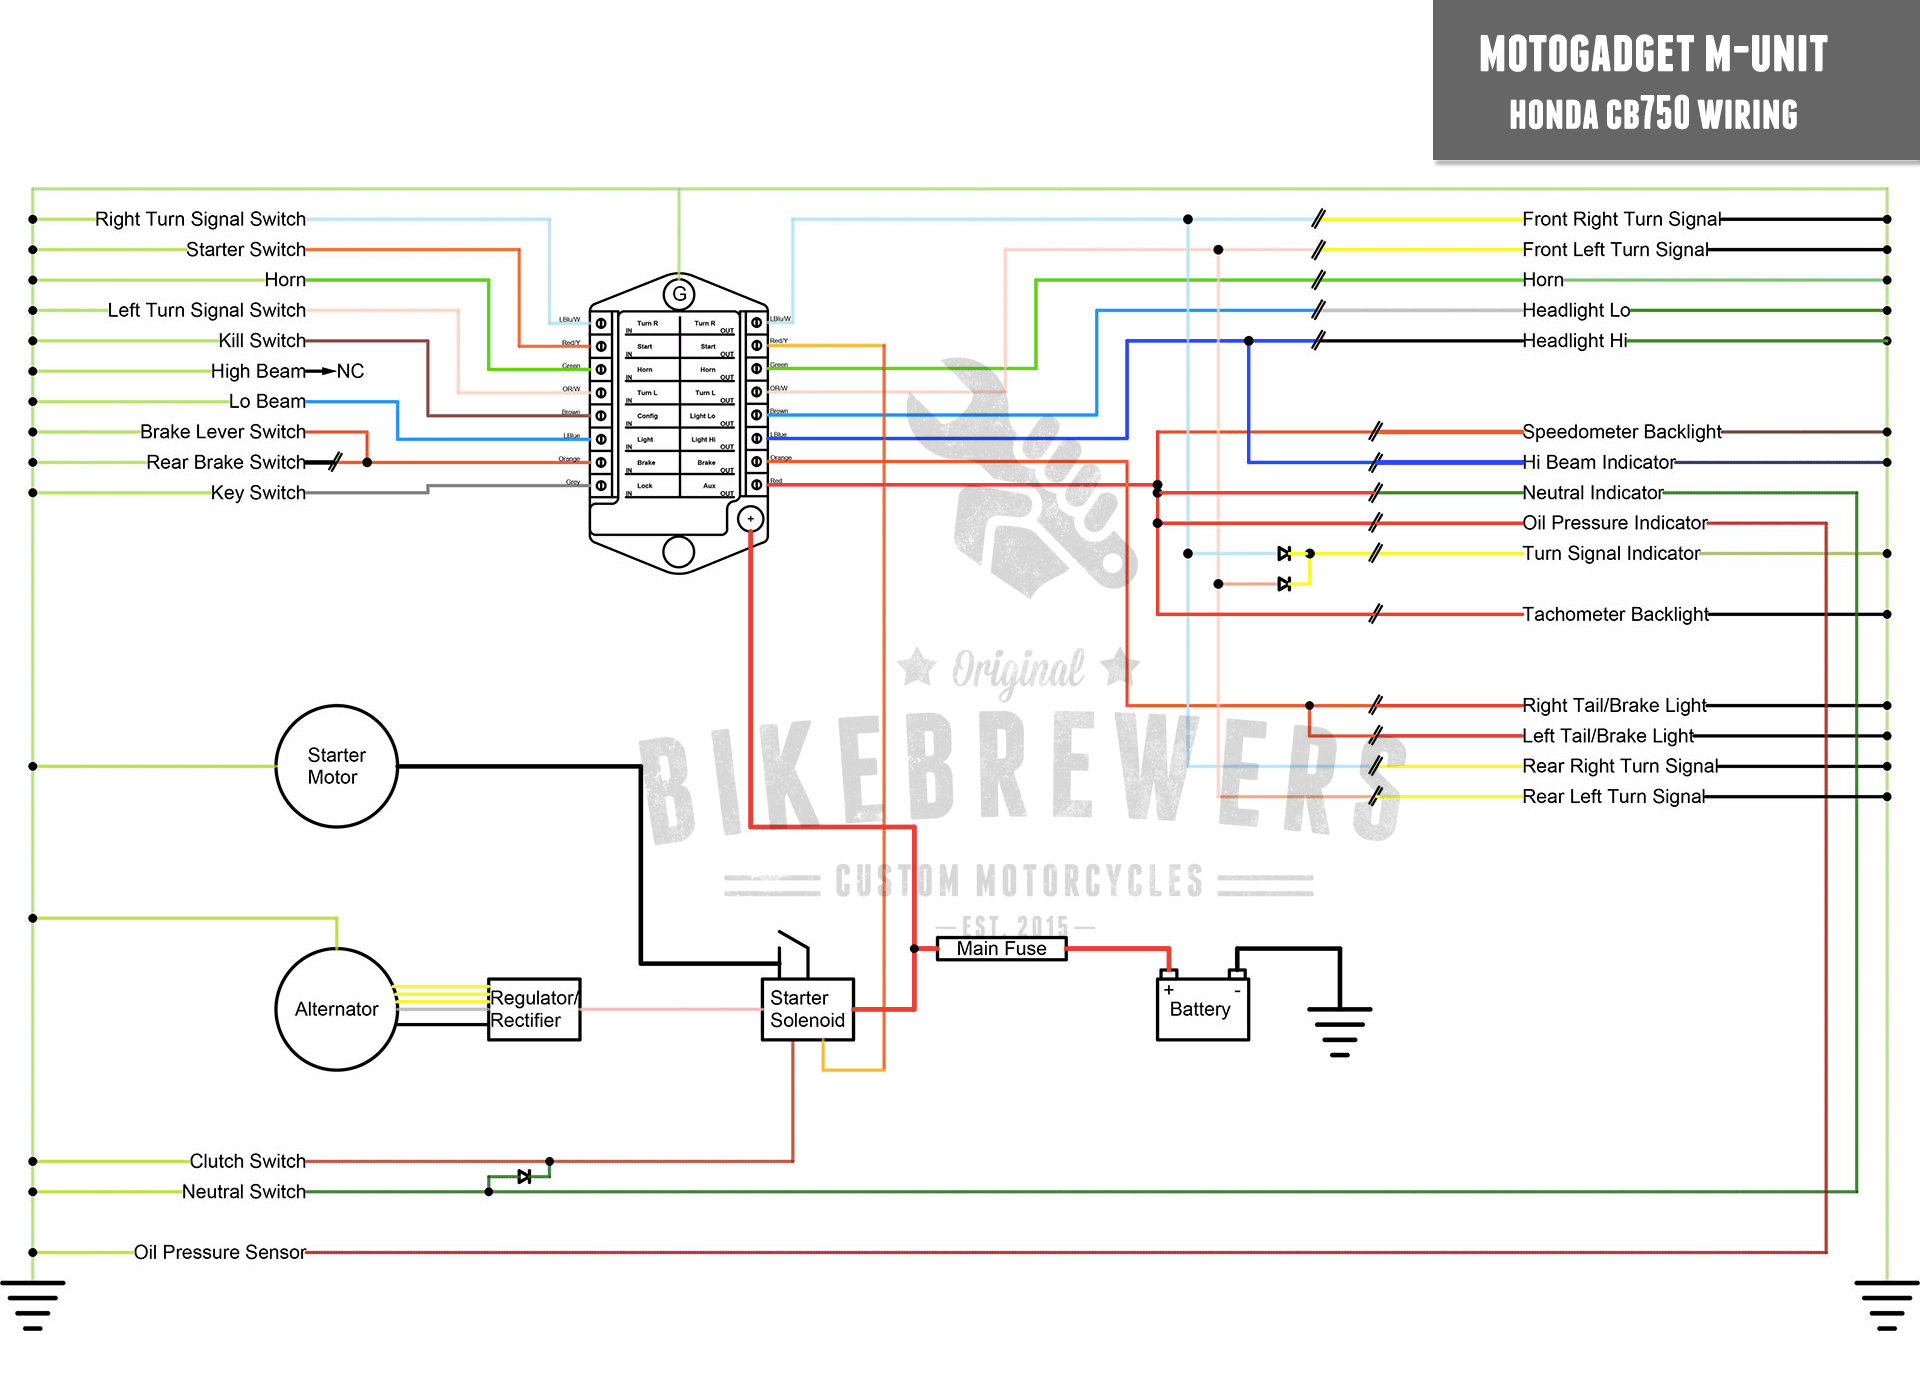 MotoGadget Wiring Honda CB750 motogadget m unit wiring bikebrewers com honda wiring diagram at nearapp.co